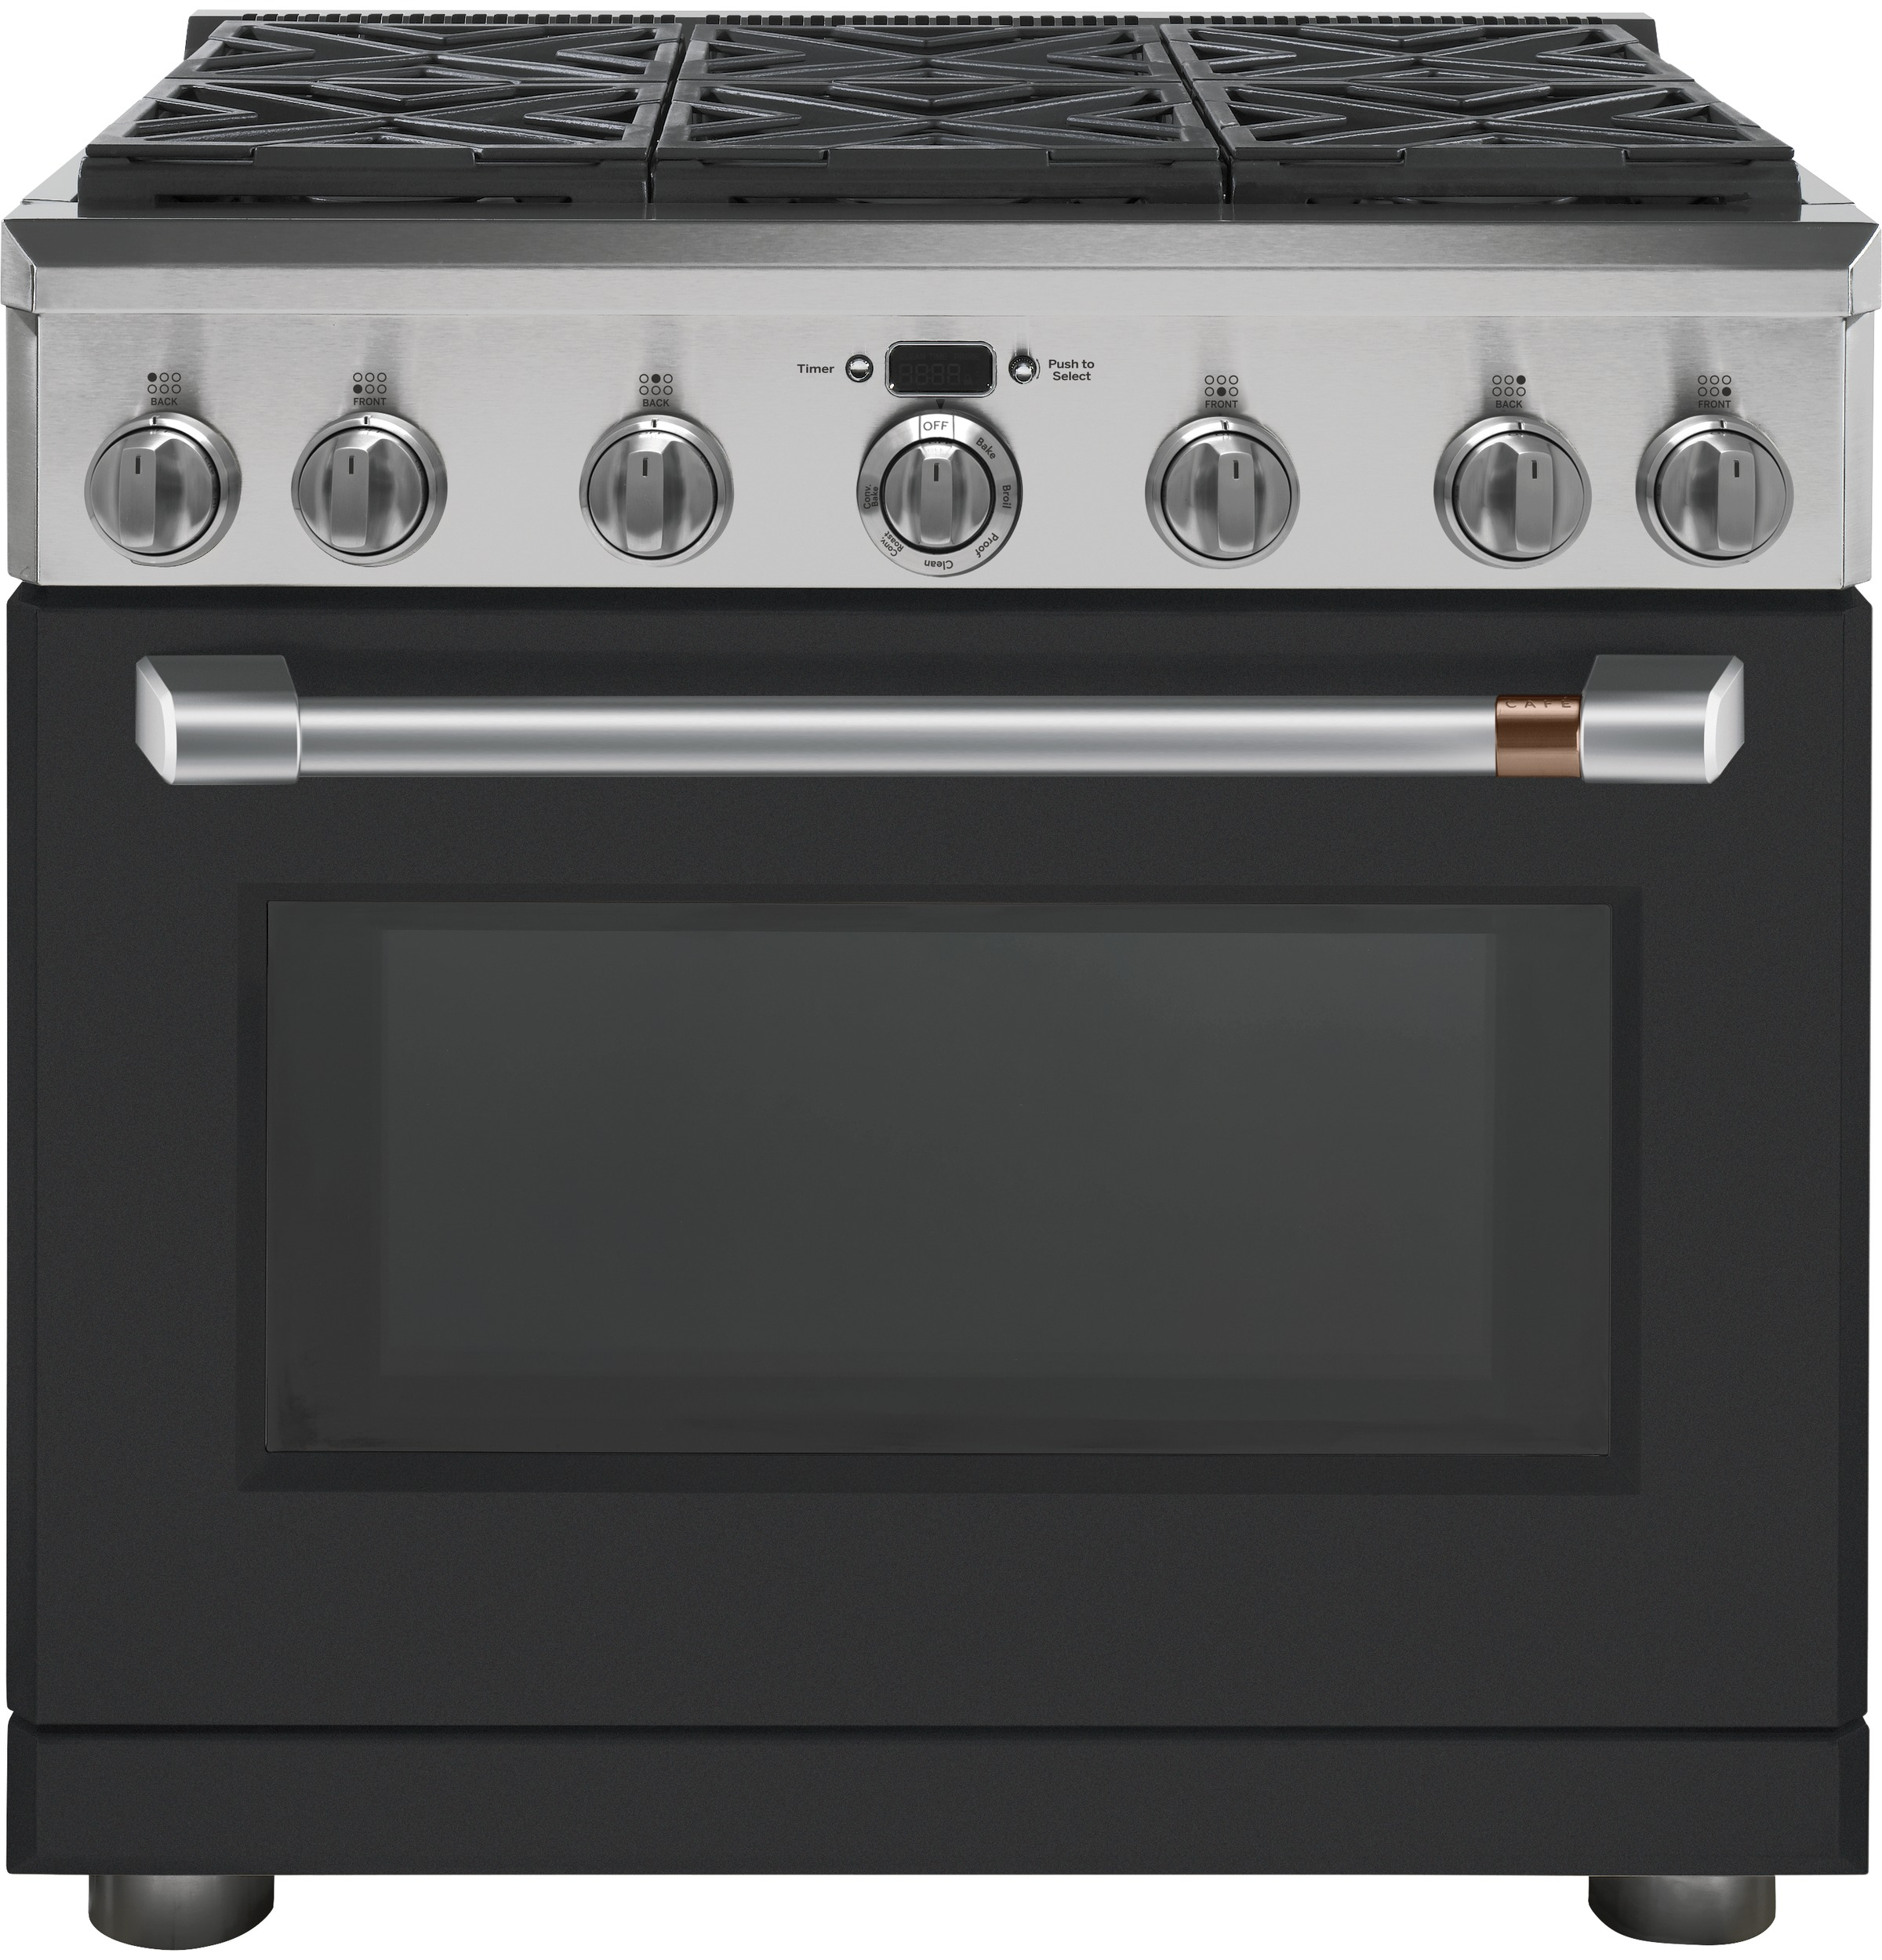 "Model: CGY366P3MD1 | Cafe Café™ 36"" All-Gas Professional Range with 6 Burners (Natural Gas)"